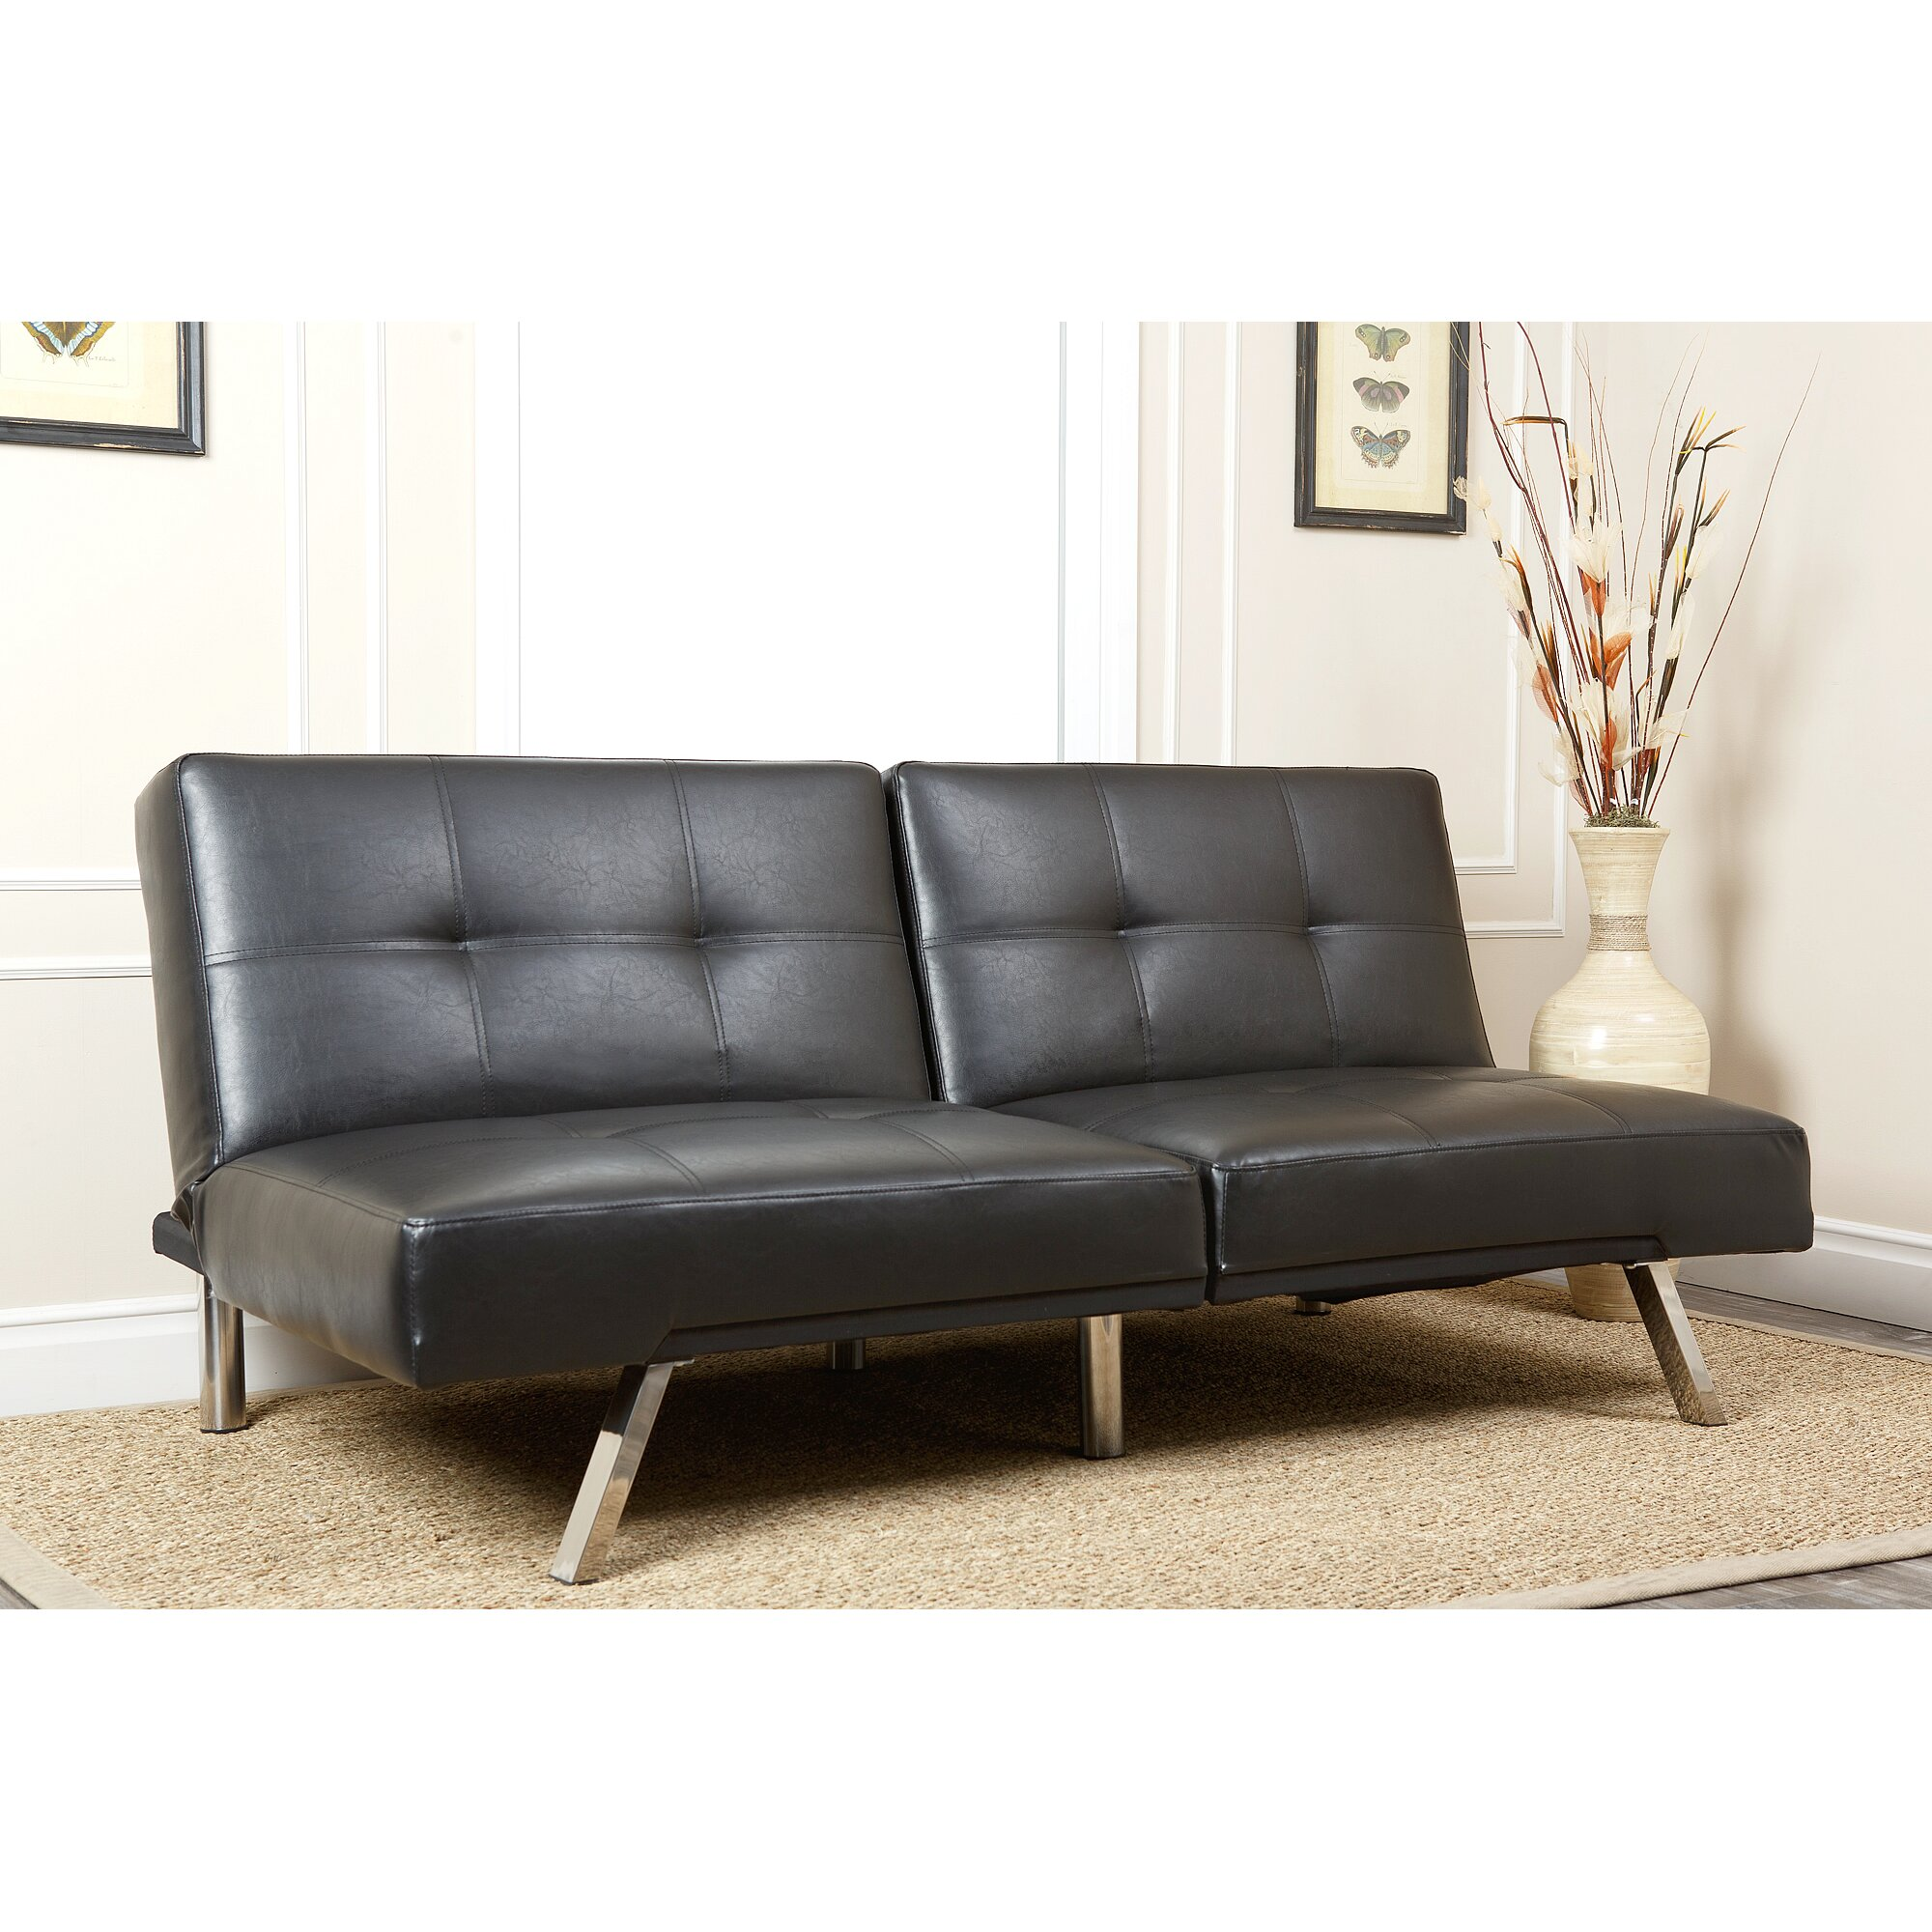 Abbyson Living Aspen Convertible Sleeper Sofa & Reviews